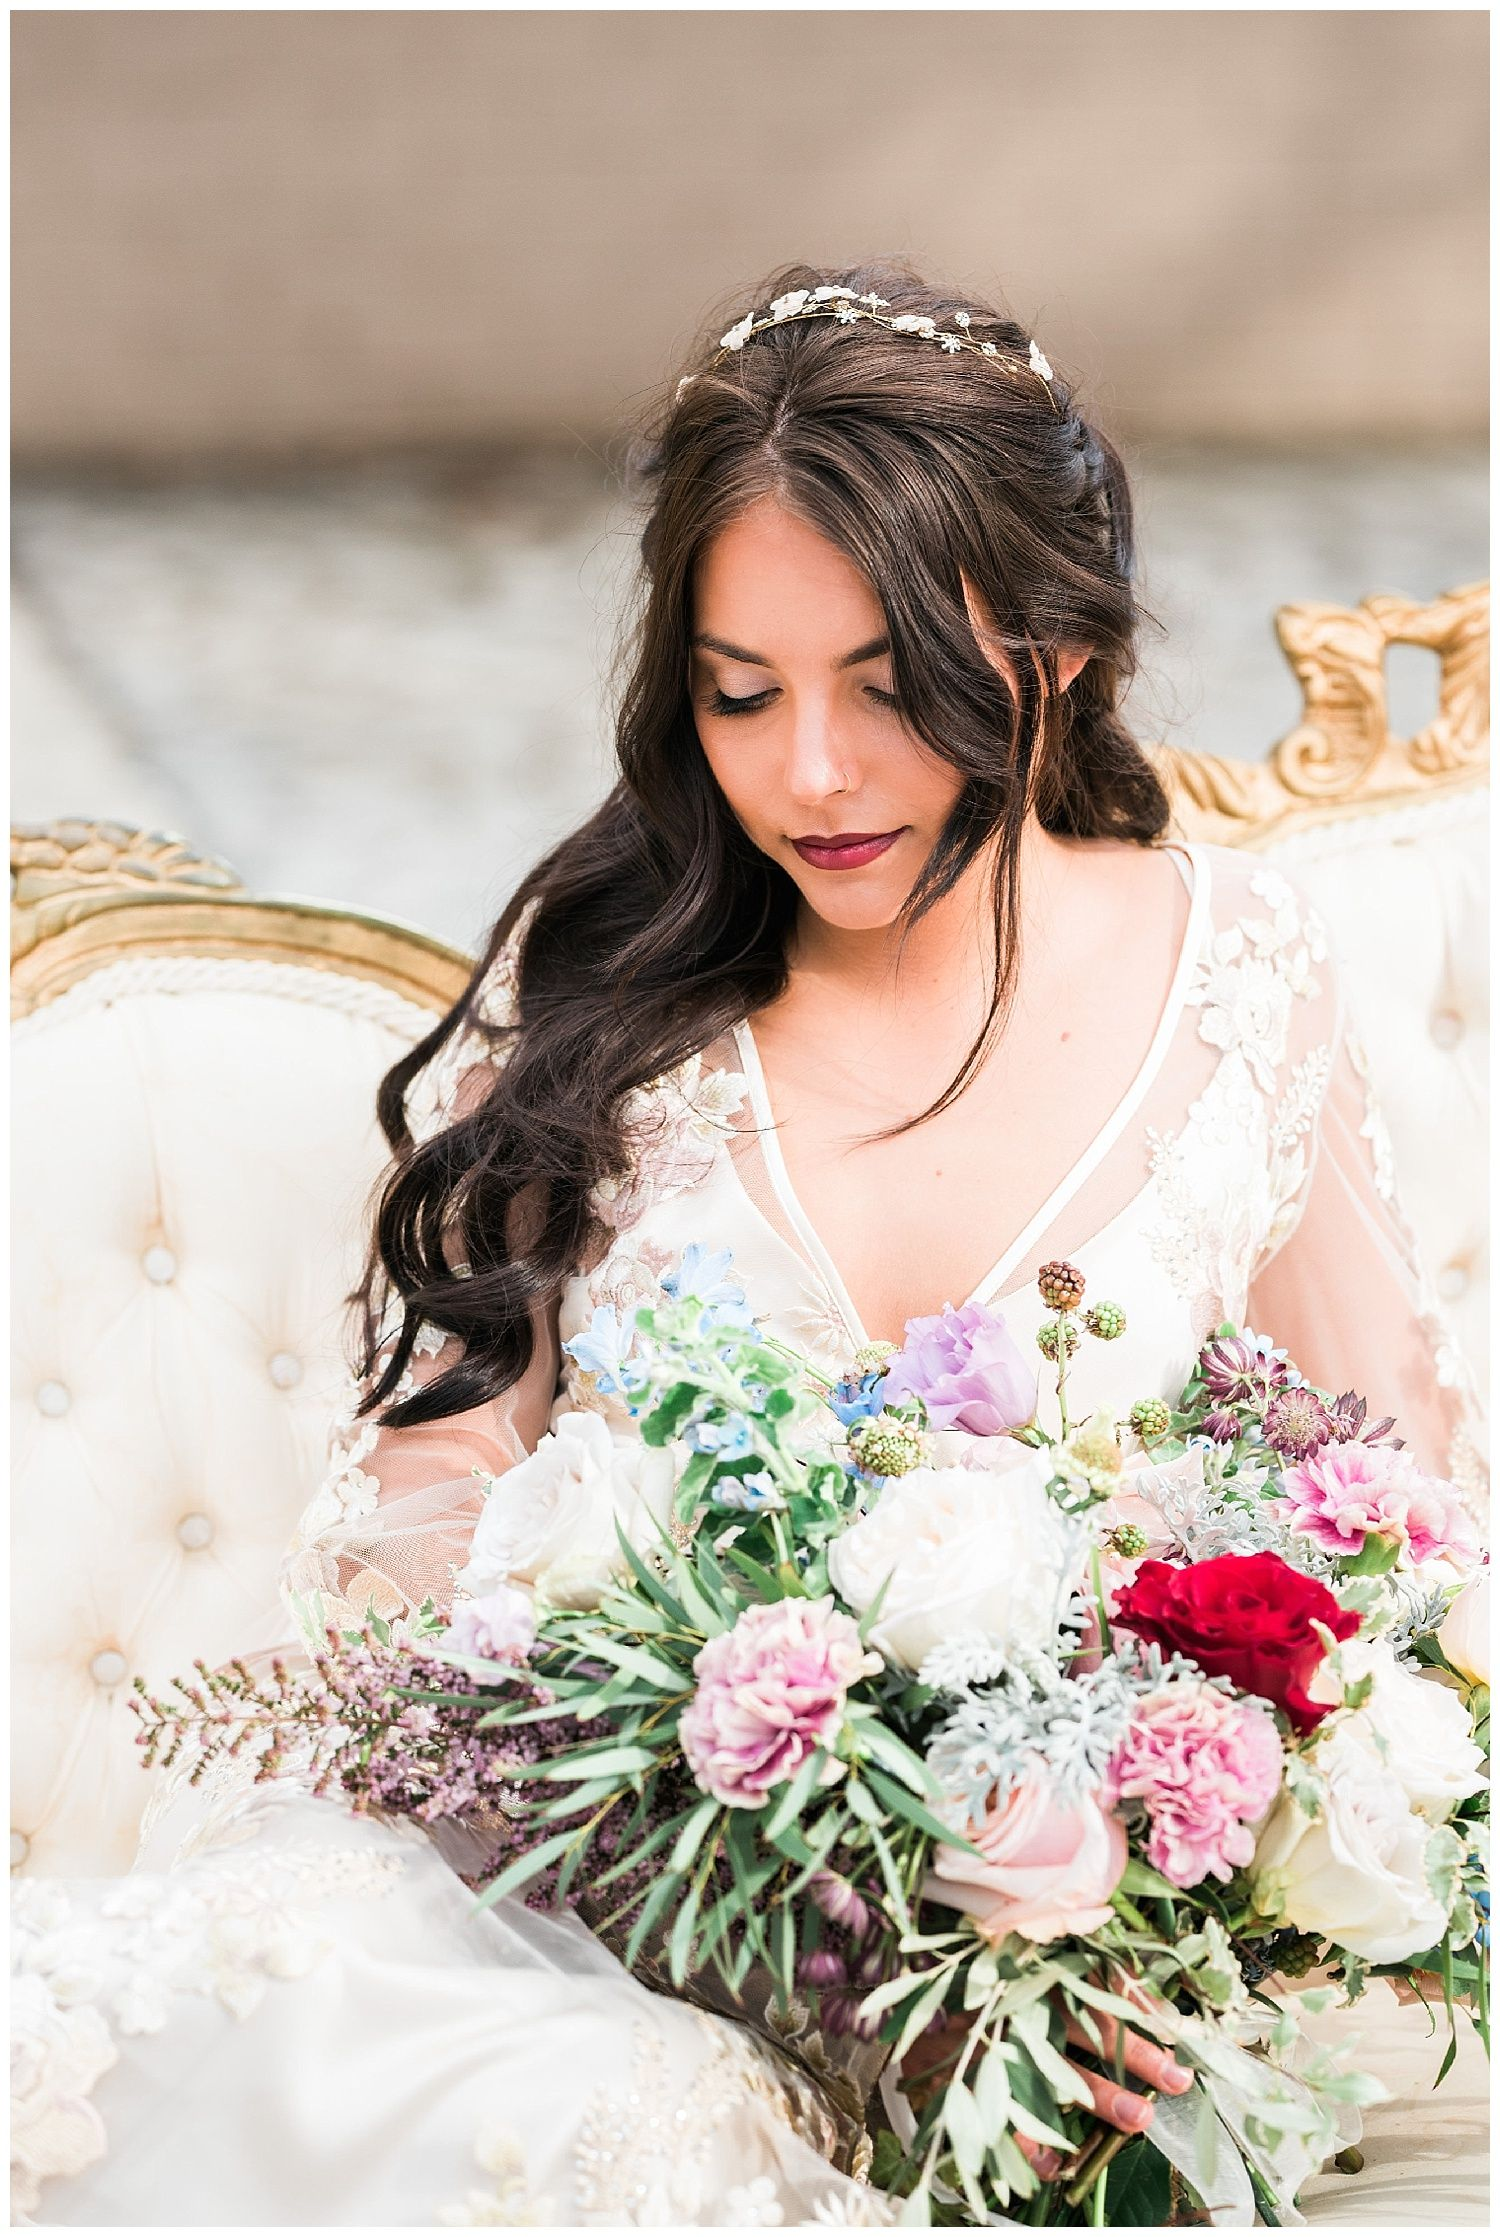 Wedding dresses pittsburgh  Beauty and the Beast Wedding Inspiration at Buhl Mansion u Kathryn